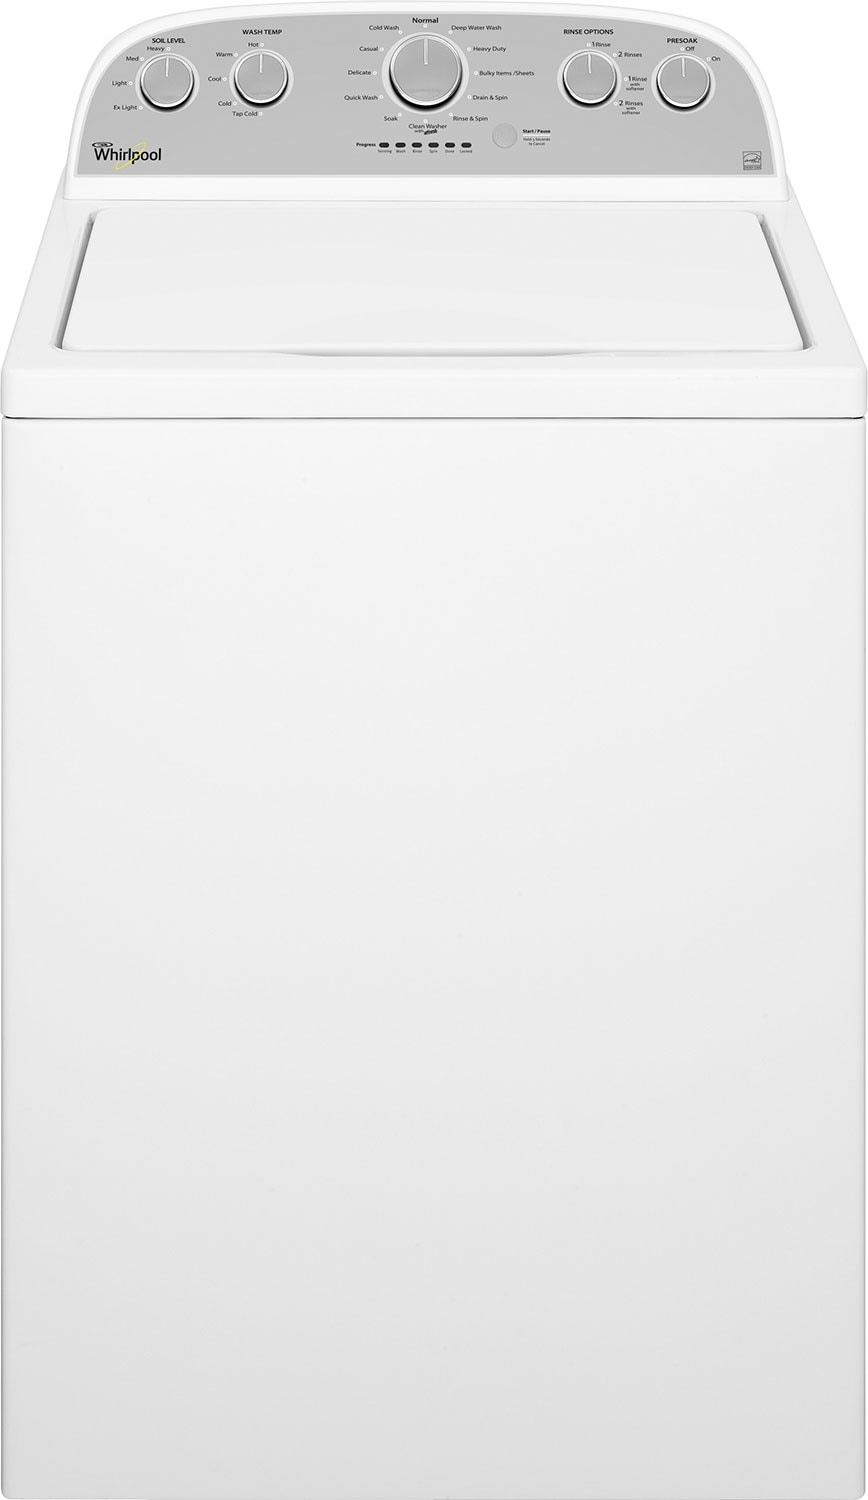 Whirlpool® 5.0 Cu. Ft. Cabrio® High-Efficiency Top-Load Washer